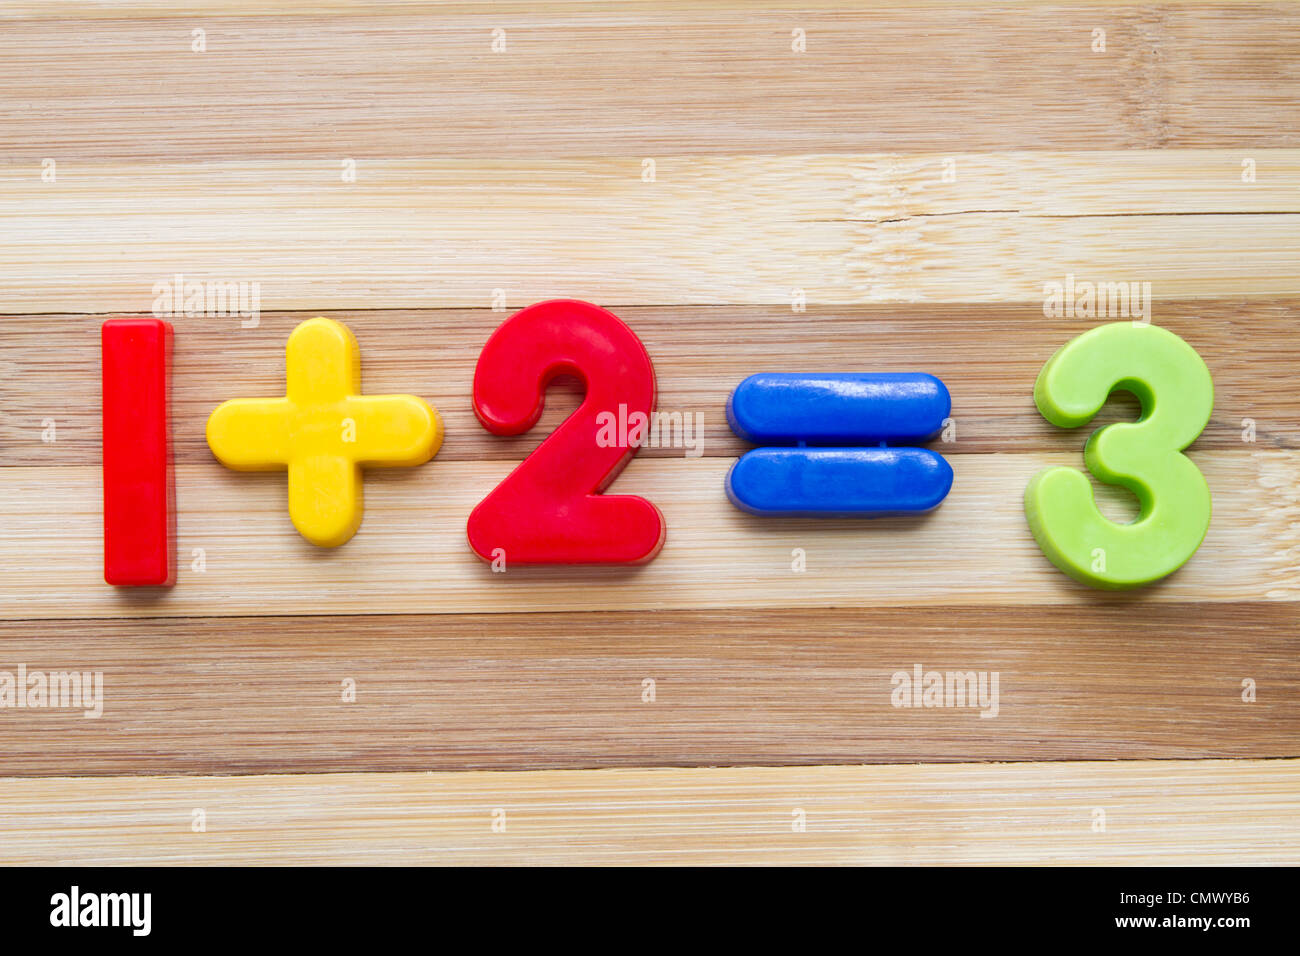 Math example with numbers magnets on wood background - Stock Image